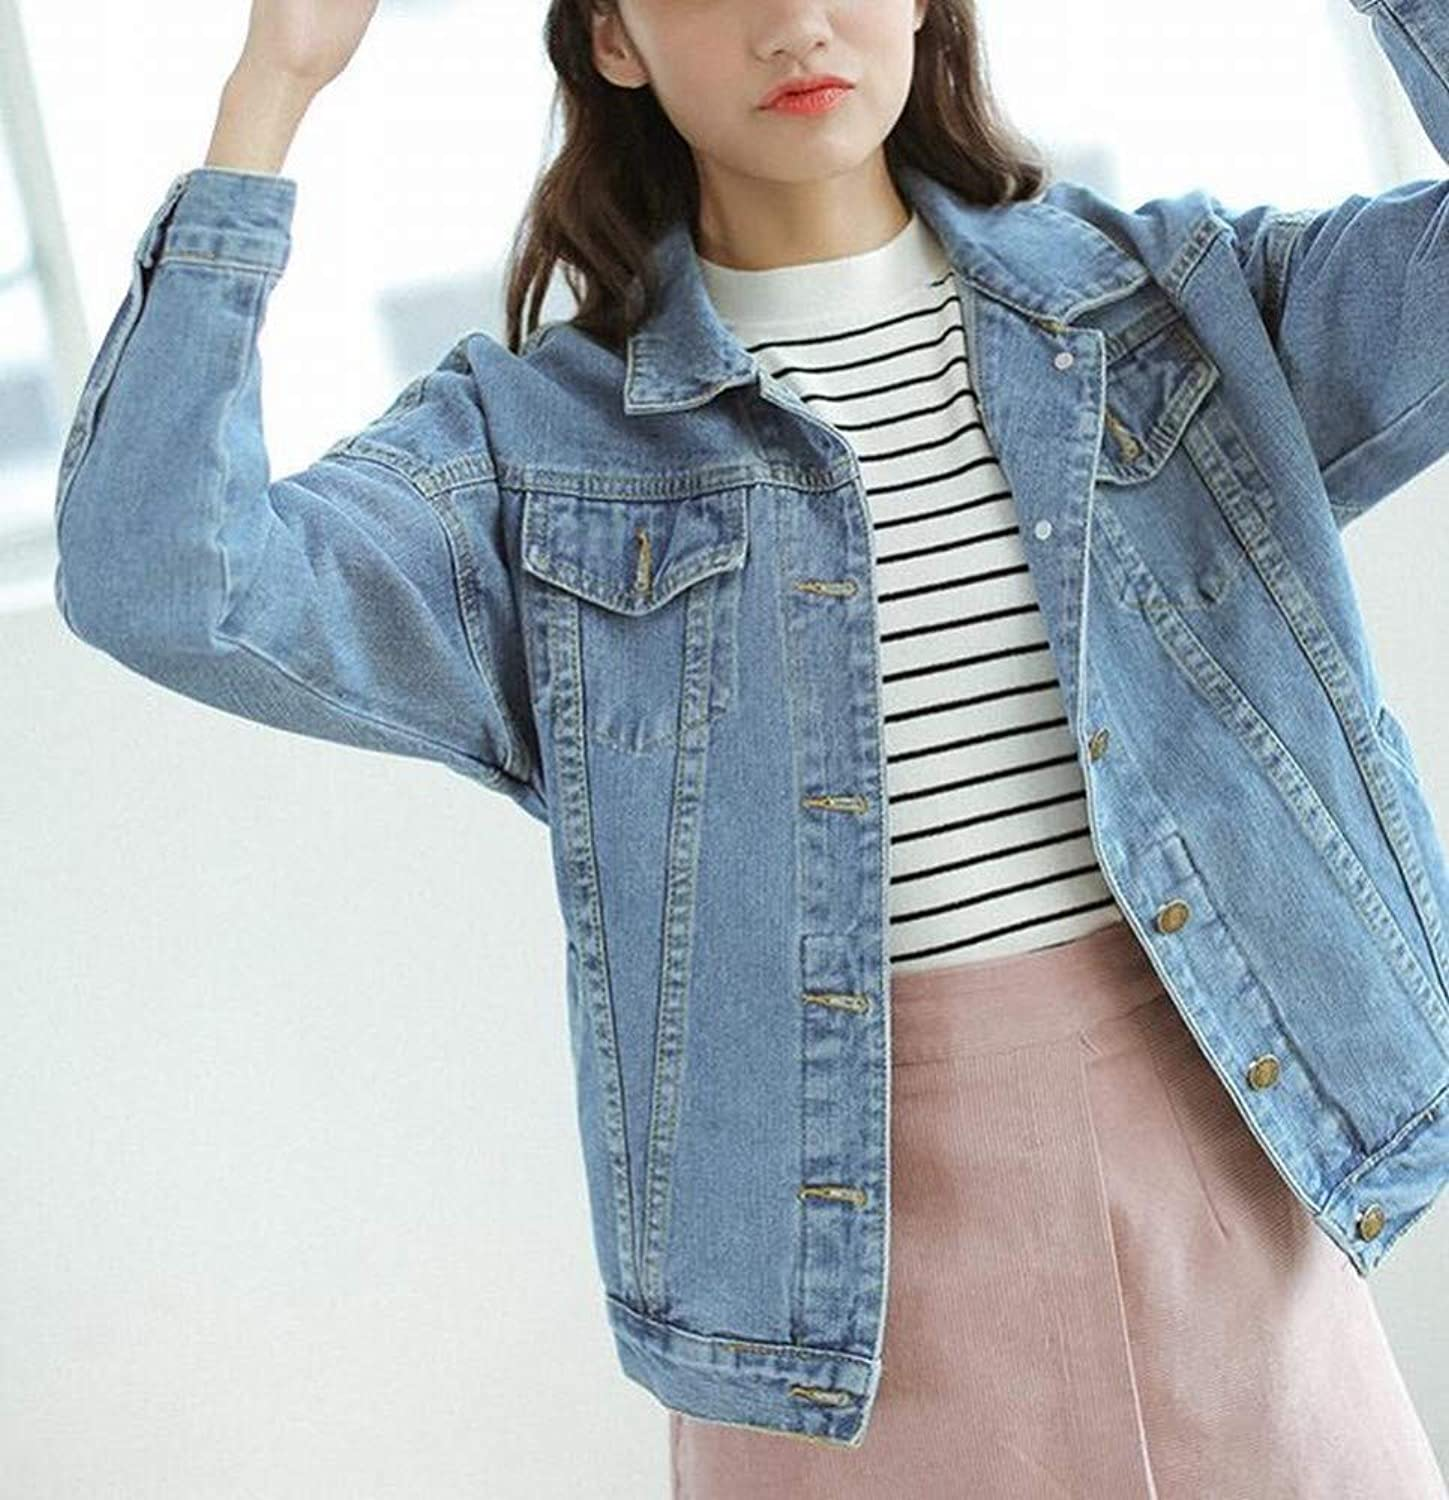 Denim Jacket Spring and Autumn Female Loose Student bf Jacket Shirt Girl Jeans,bluee,S DEED